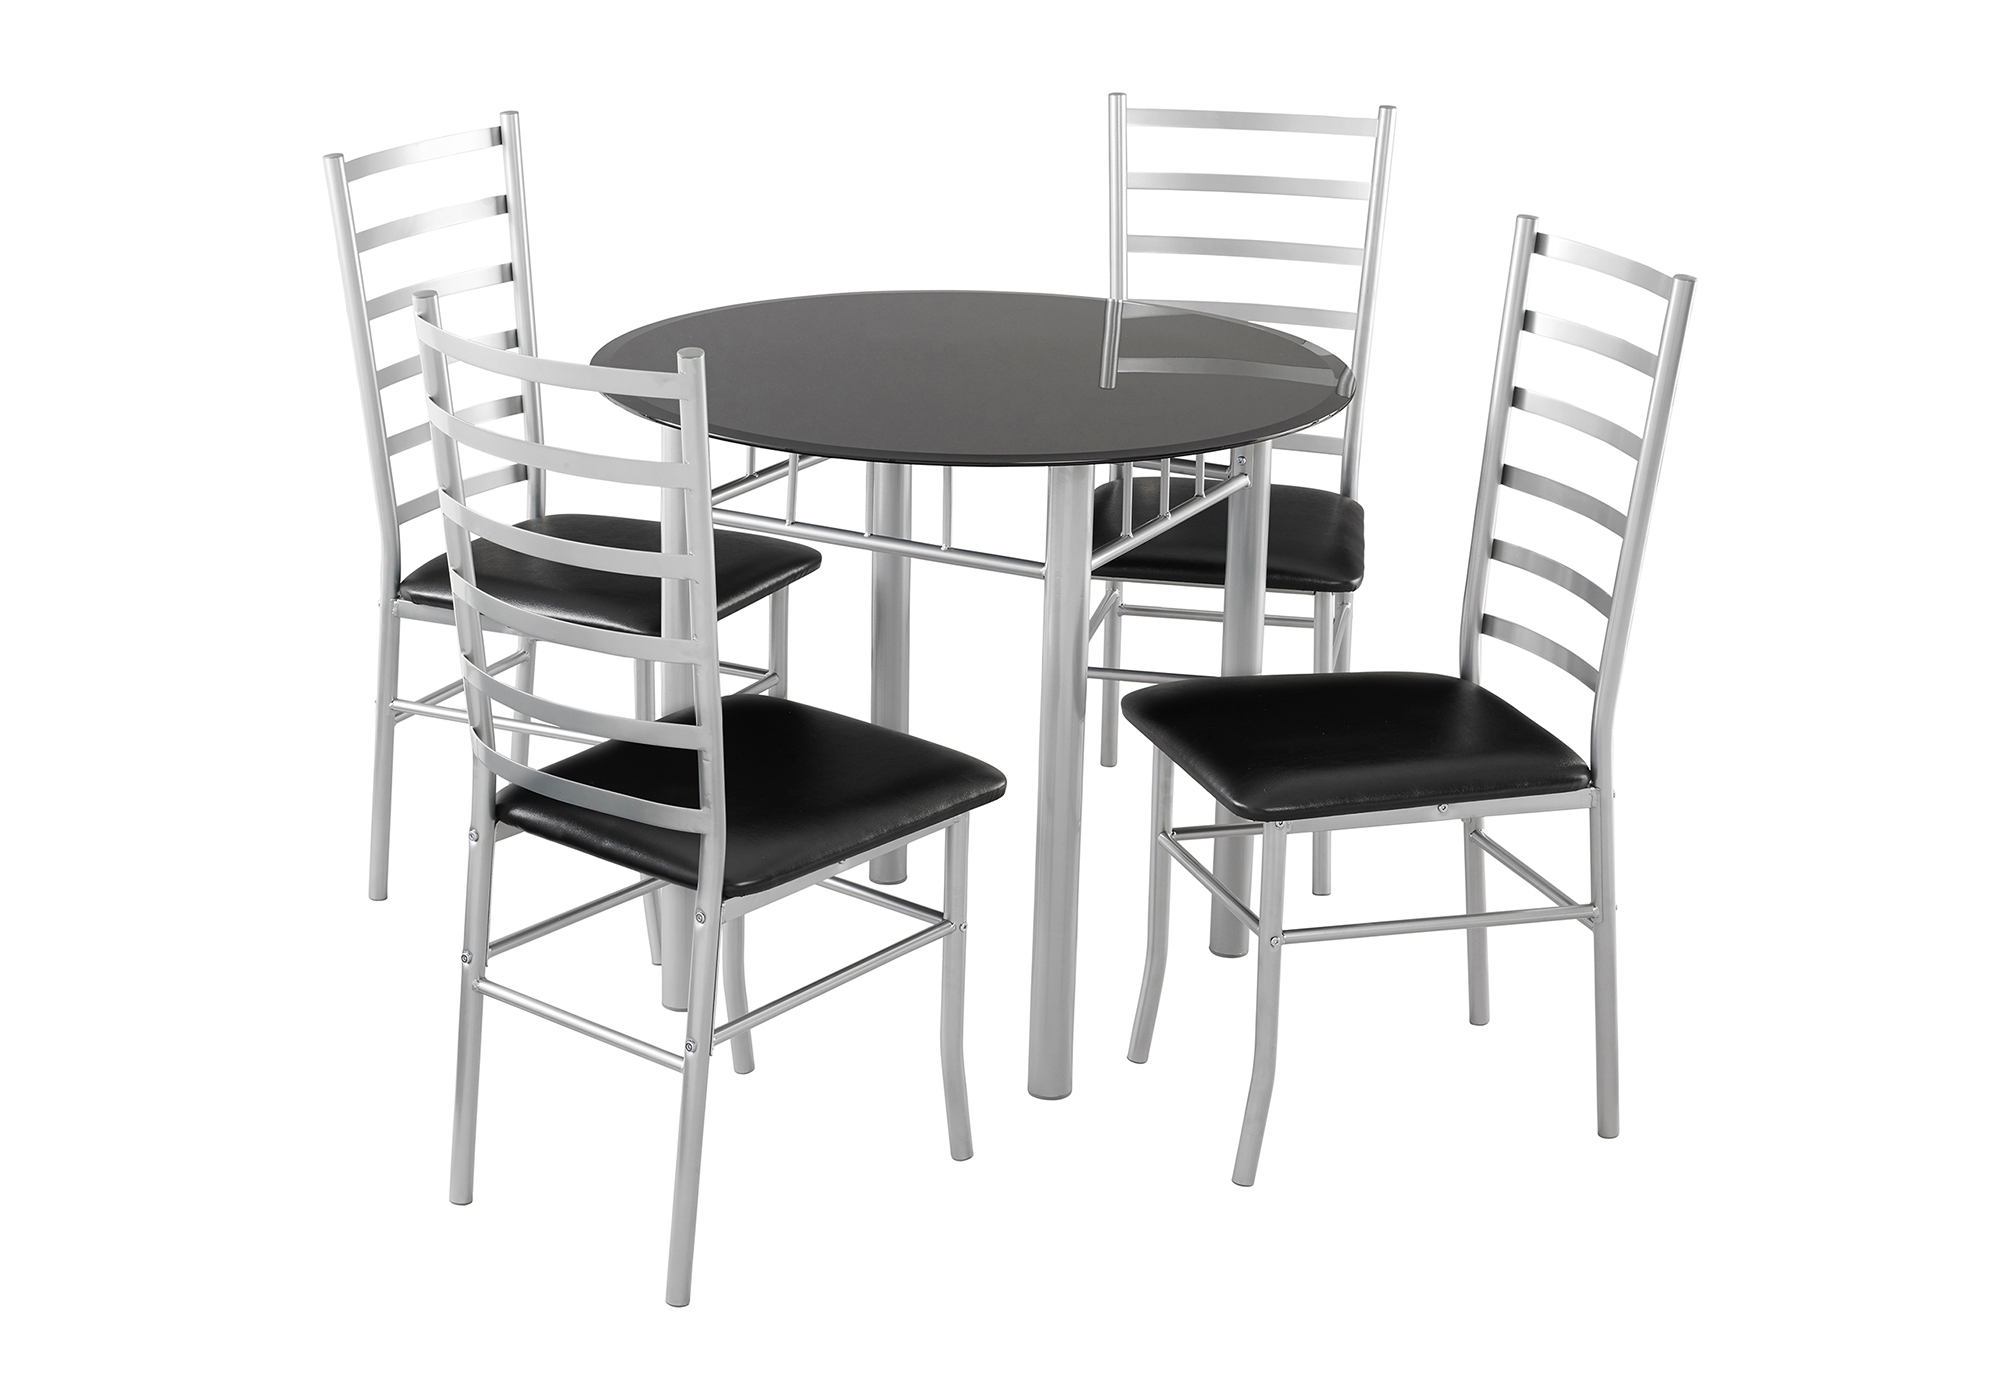 2017 Lincoln Dining Set 4 Seater – Black Glass Dining Table & 4 Chairs Intended For Black Glass Dining Tables (View 1 of 25)